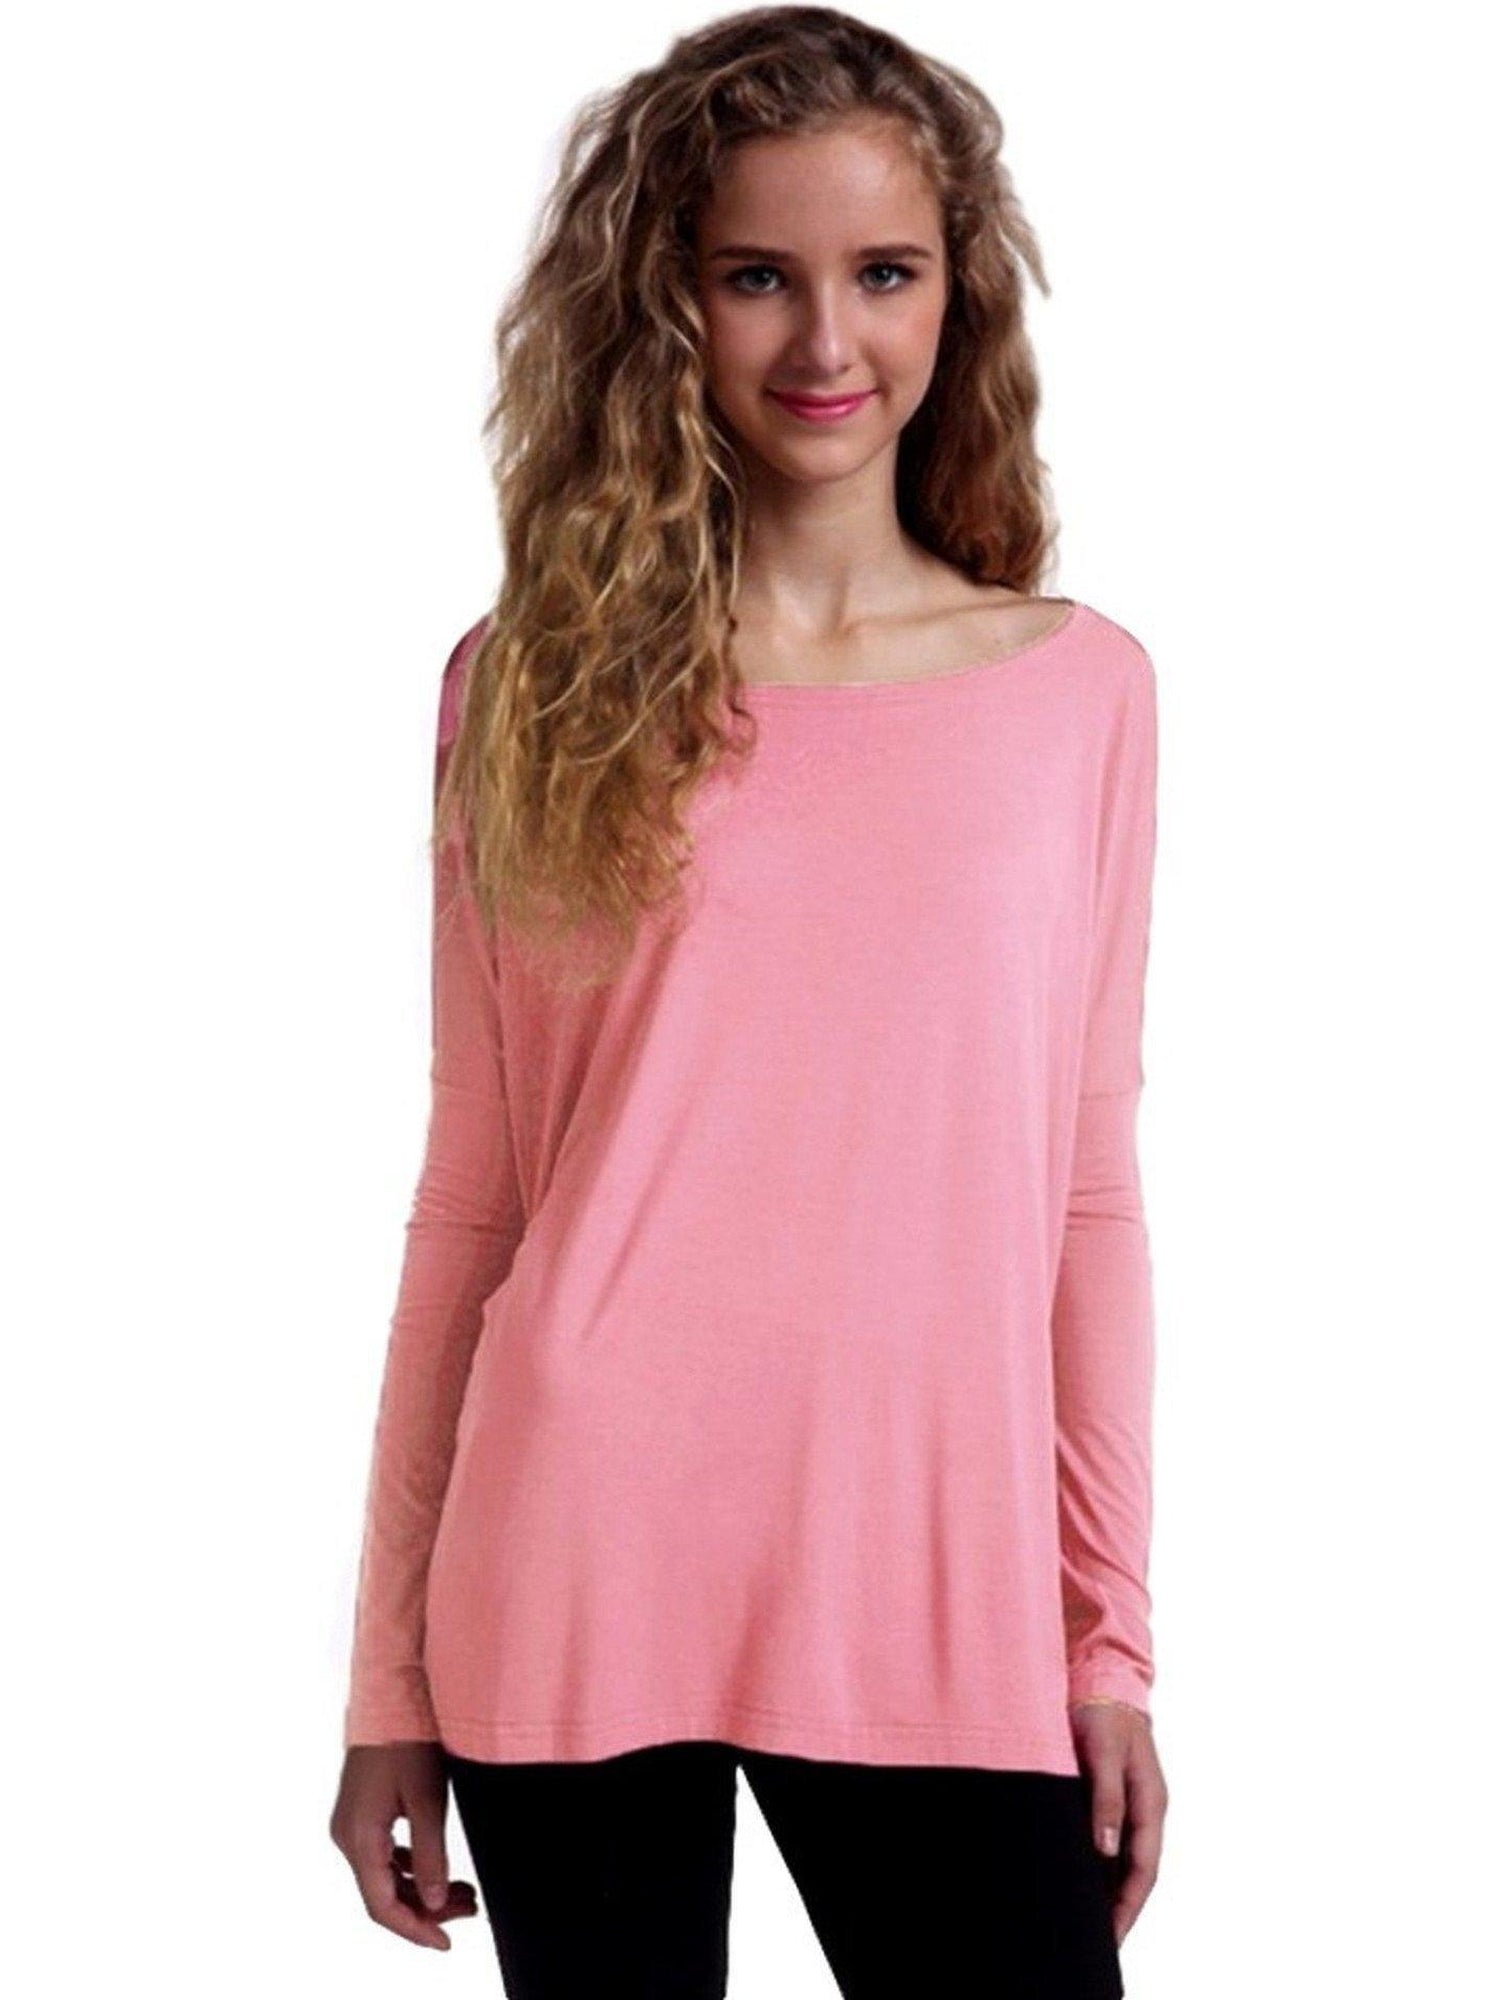 033b794b43d ... Authentic Piko Long Sleeve Top